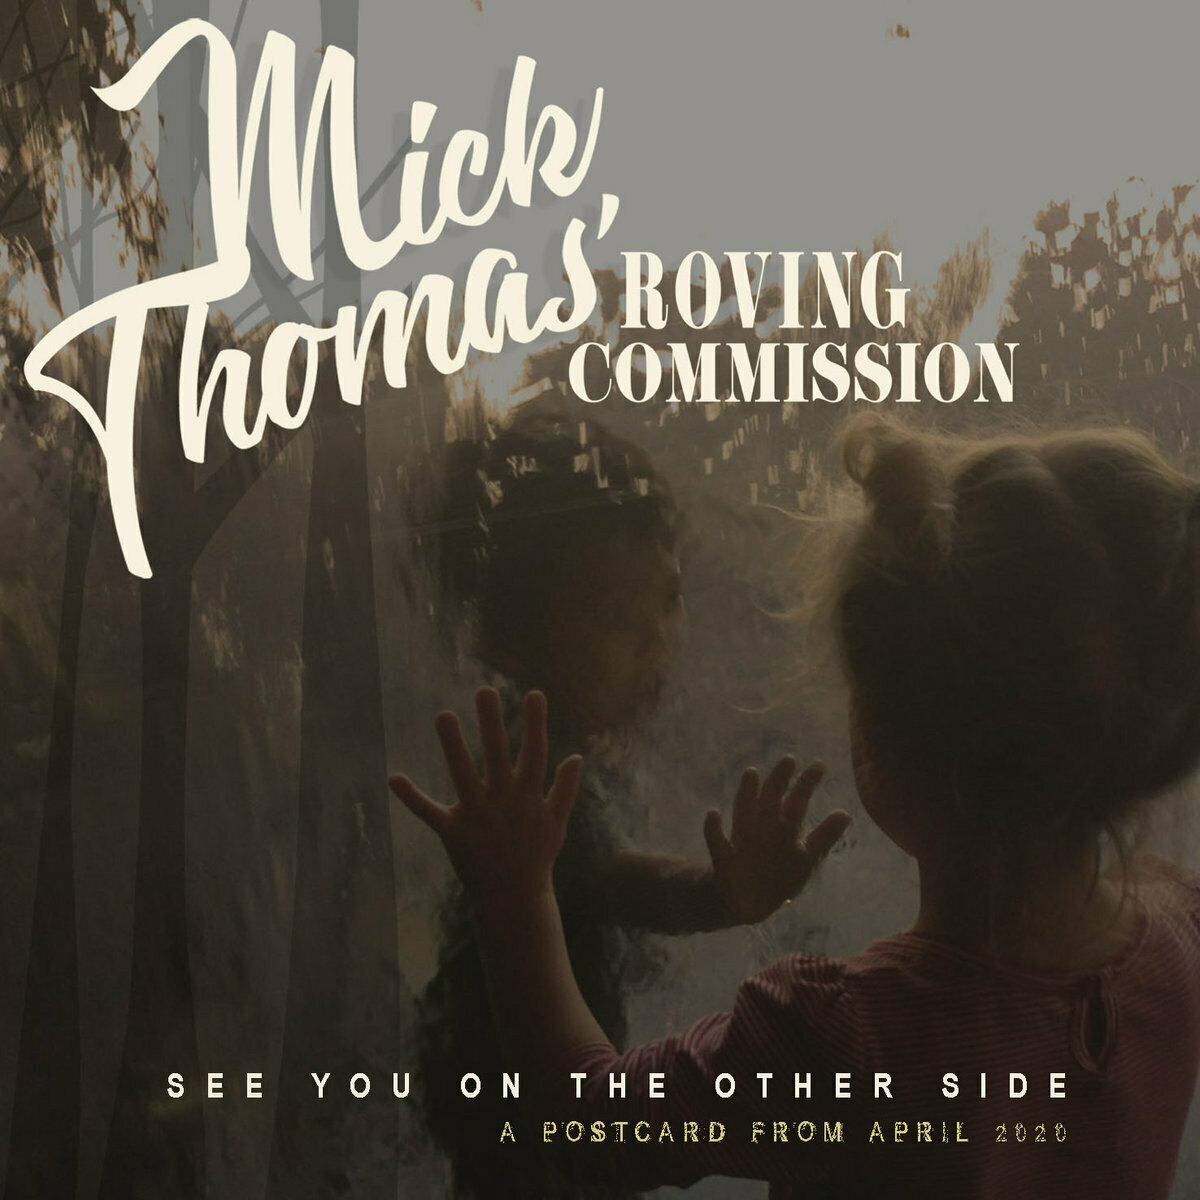 Mick Thomas Roving Commission - See You On The Other Side (A Postcard From April 2020) [LP]